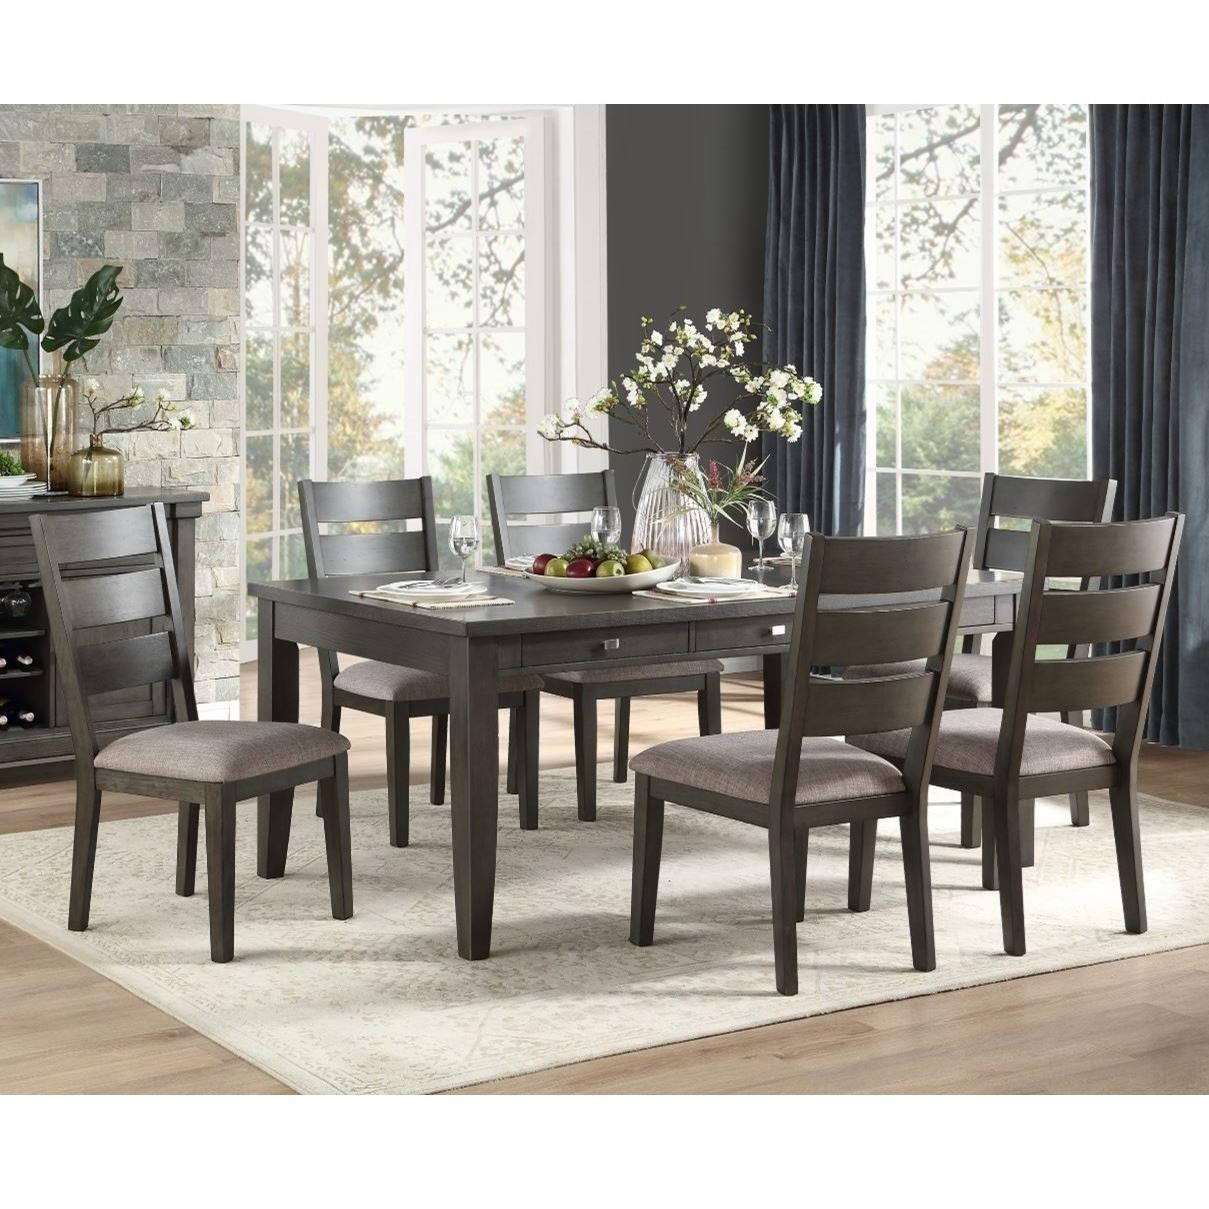 Baresford 7-Piece Table and Chair Set by Homelegance at Value City Furniture